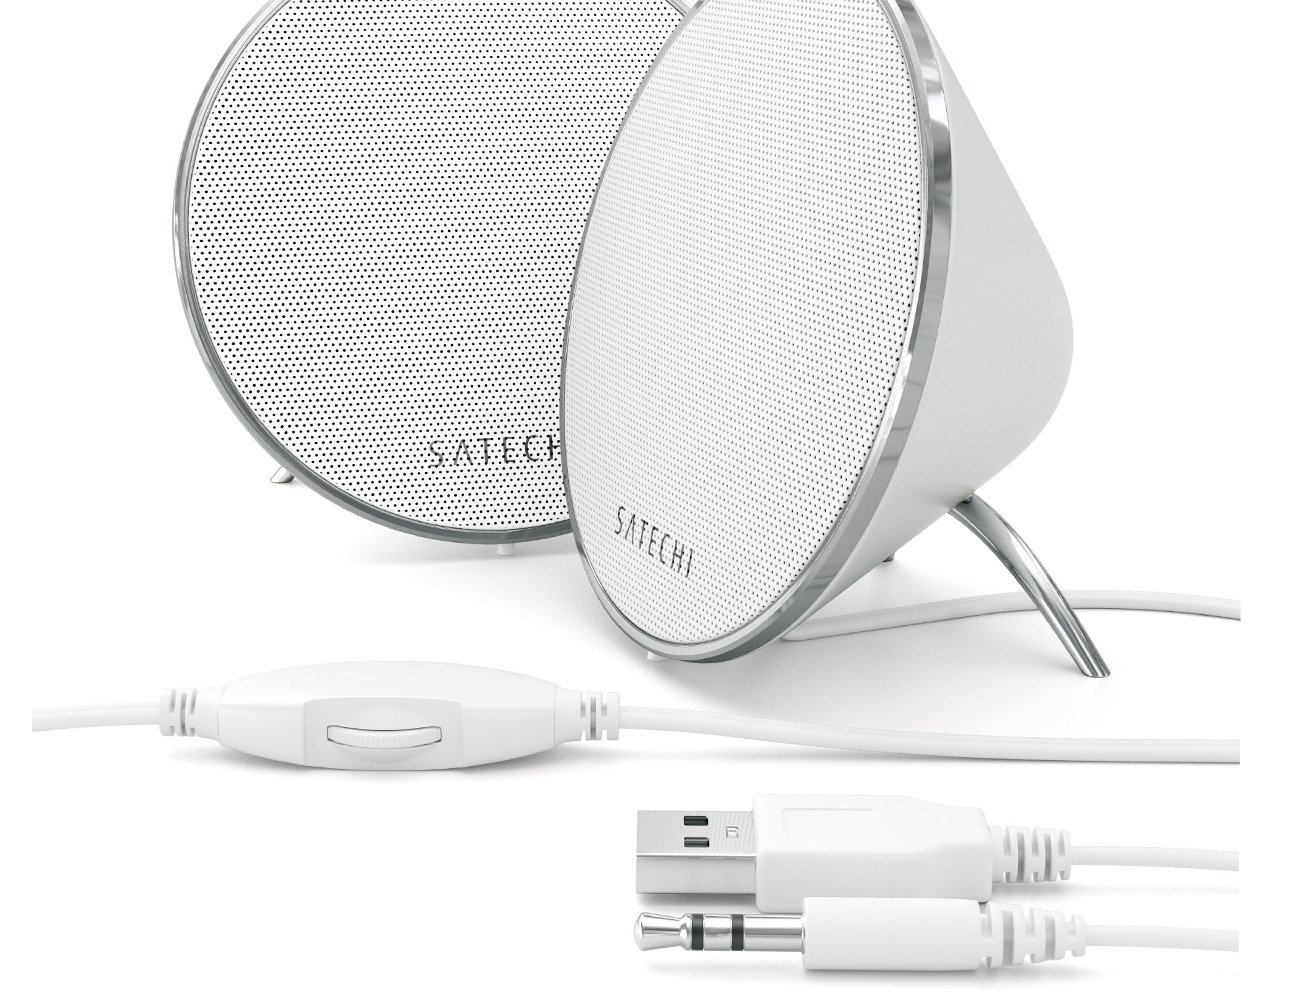 Satechi Dual Sonic Conical v2.0 Speakers